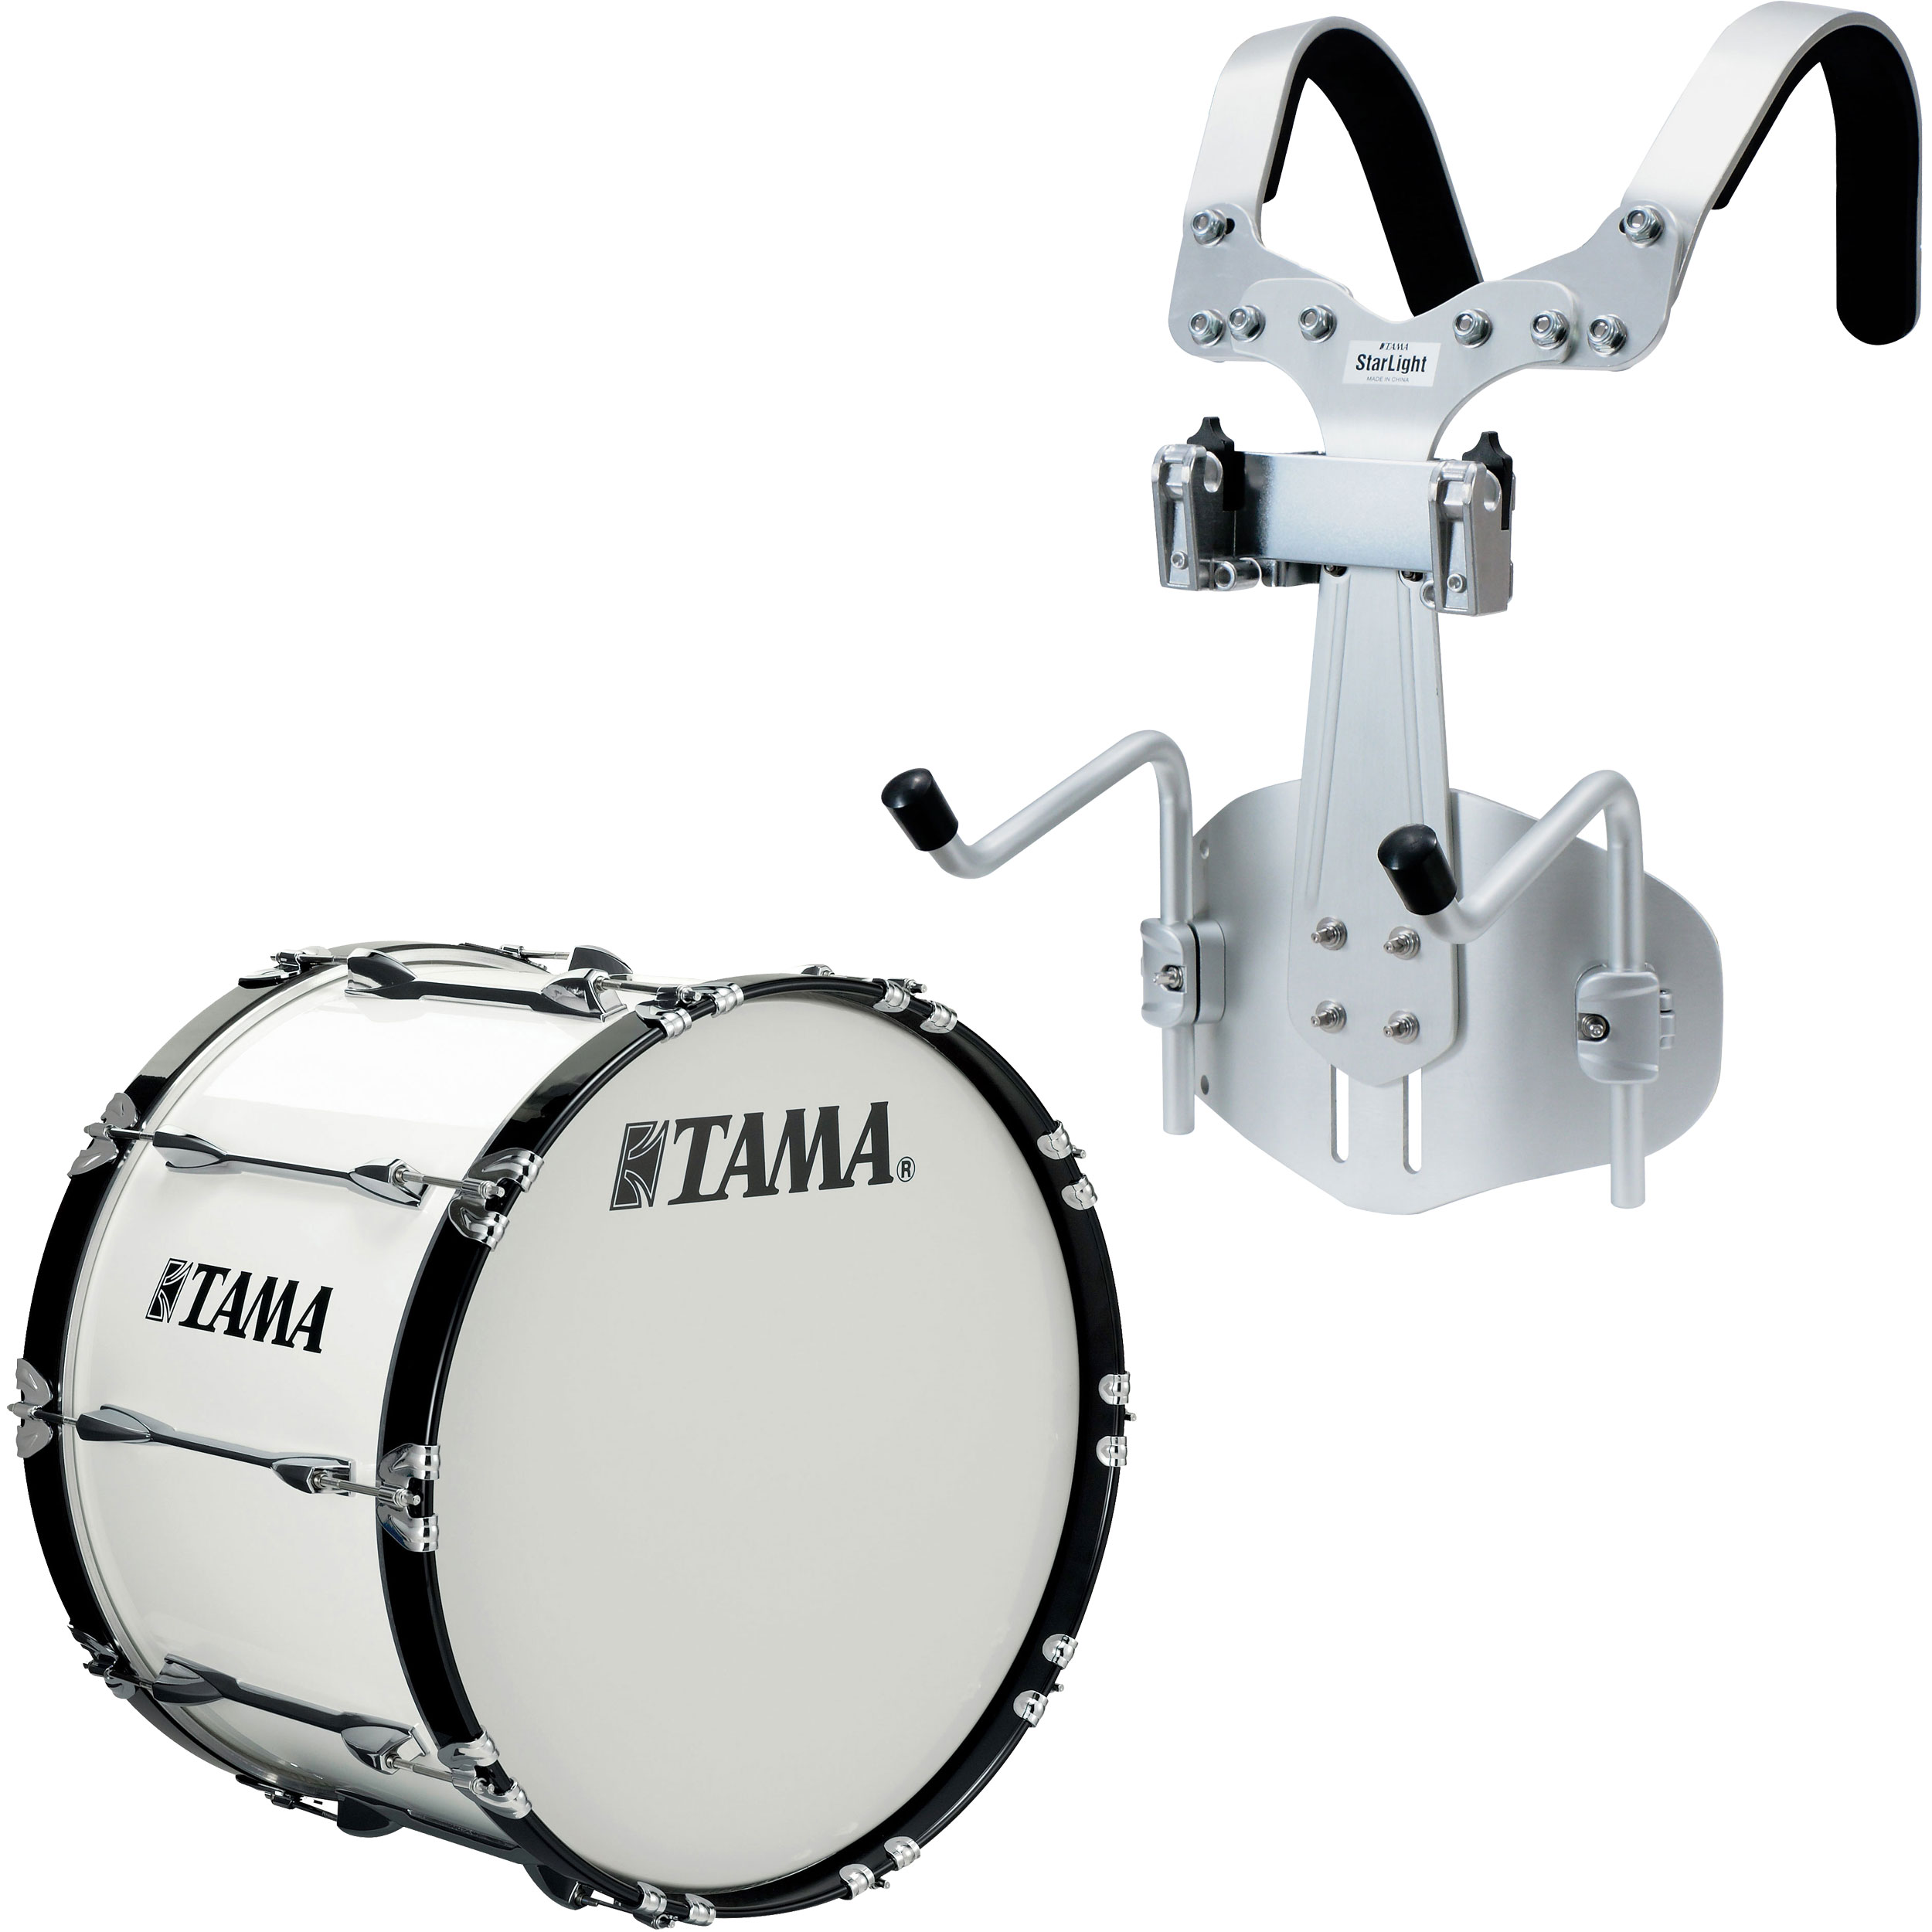 "Tama 26"" StarLight Marching Bass Drum in Sugar White Wrap with Carrier"